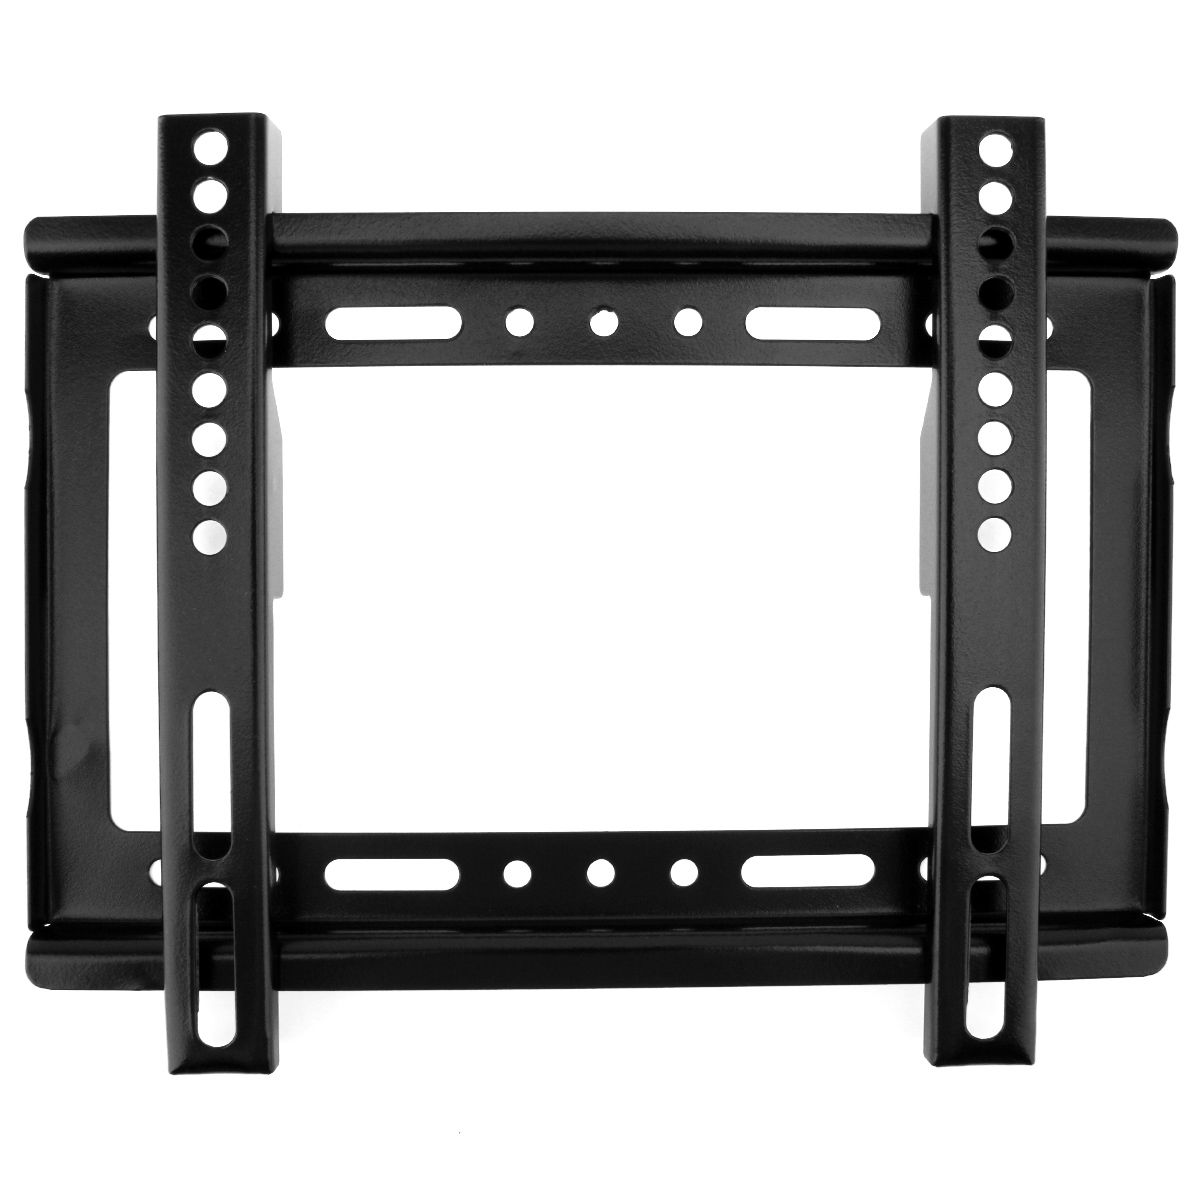 2017 hot sales universal tv wall mount bracket for most. Black Bedroom Furniture Sets. Home Design Ideas